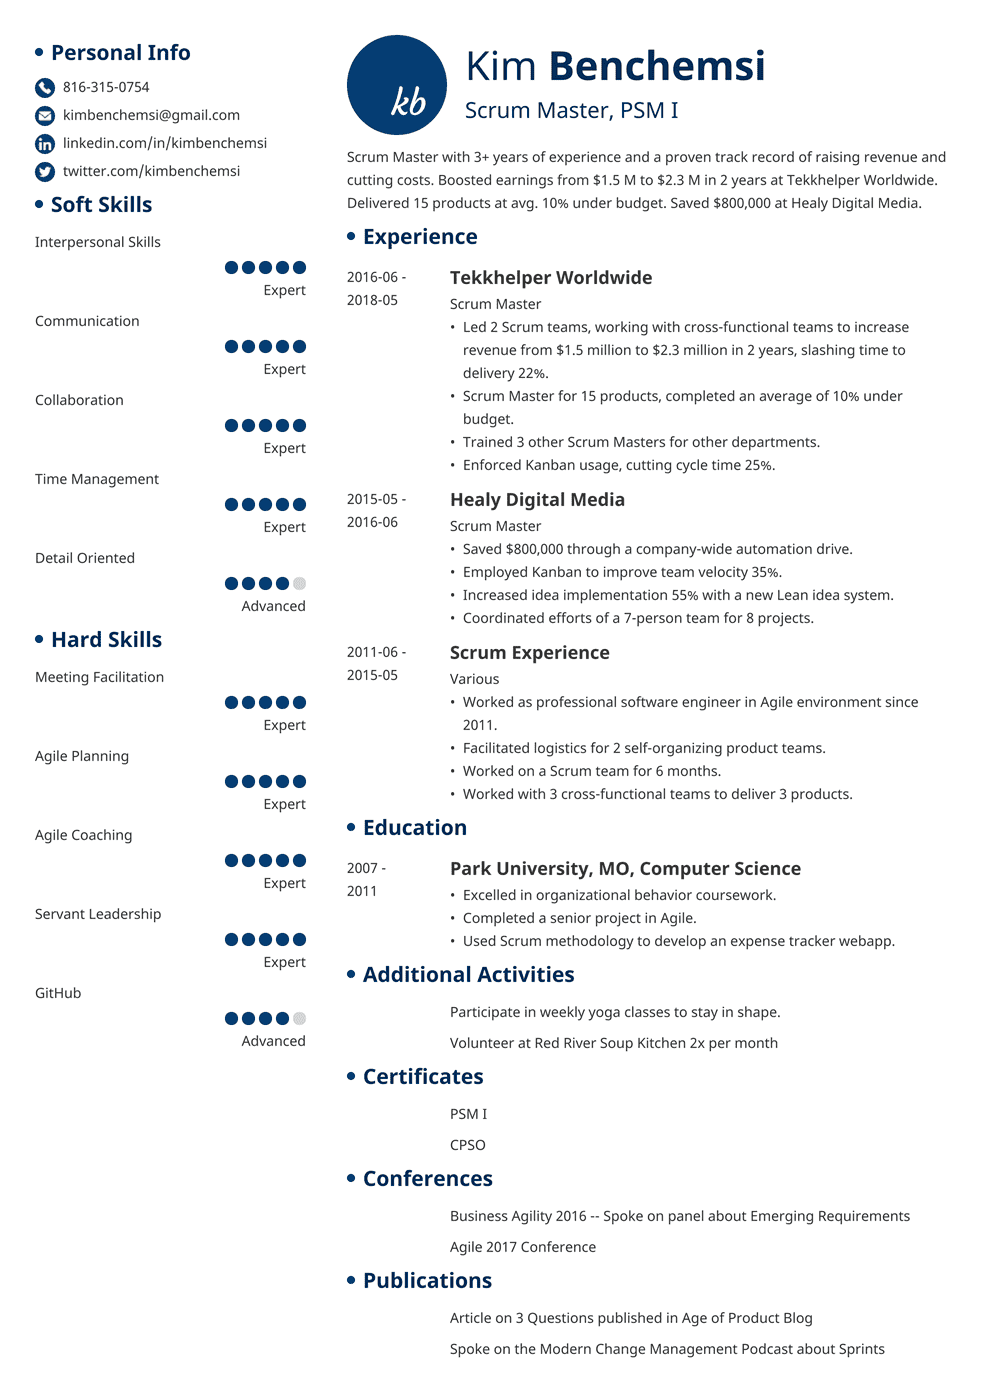 Scrum Master Resume Sample & Guide [+20 Examples]